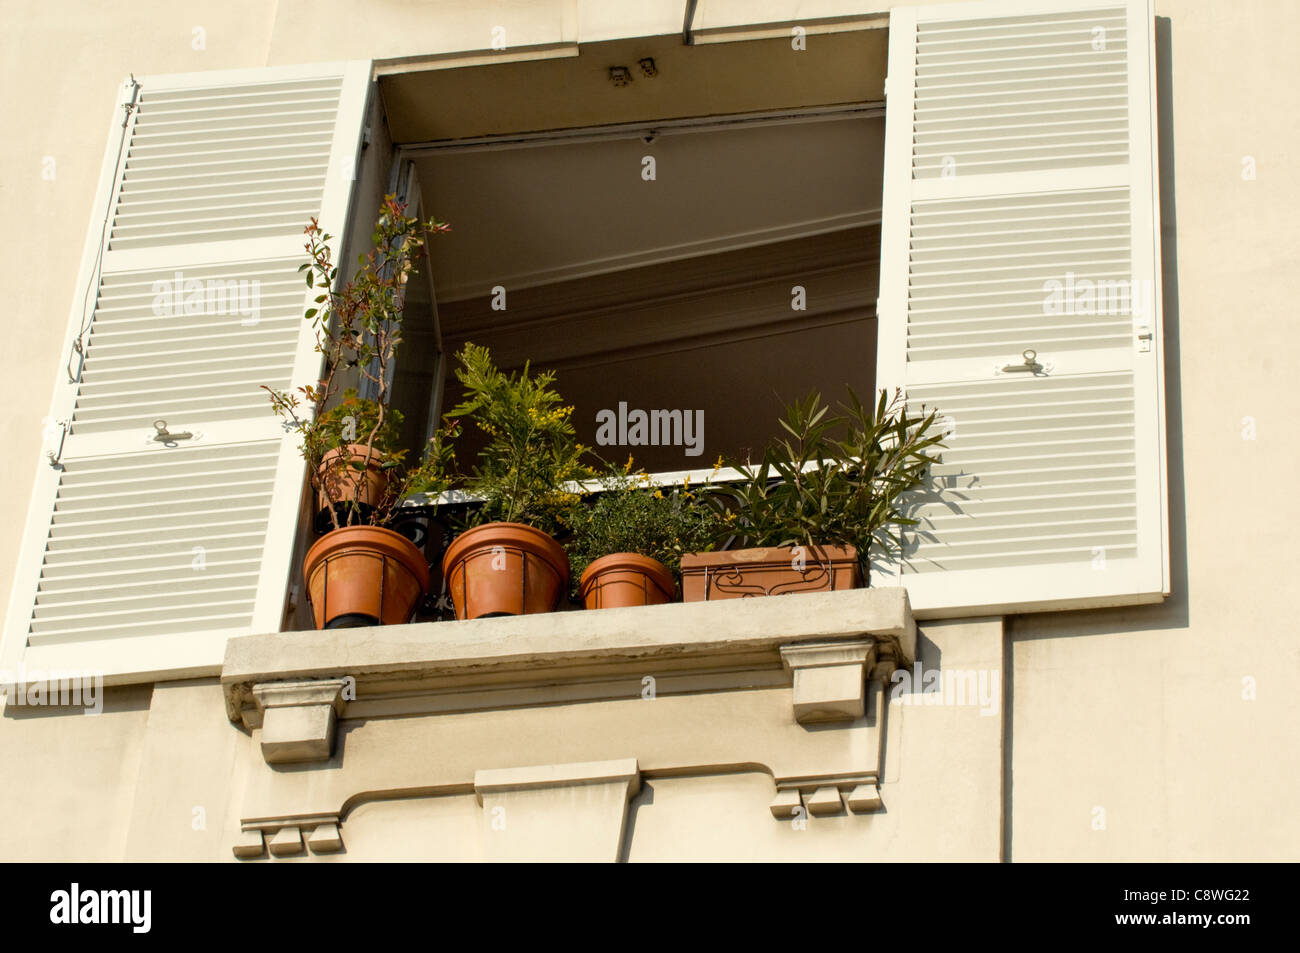 Plants Outside Window Sill Stockfotos & Plants Outside Window Sill ...